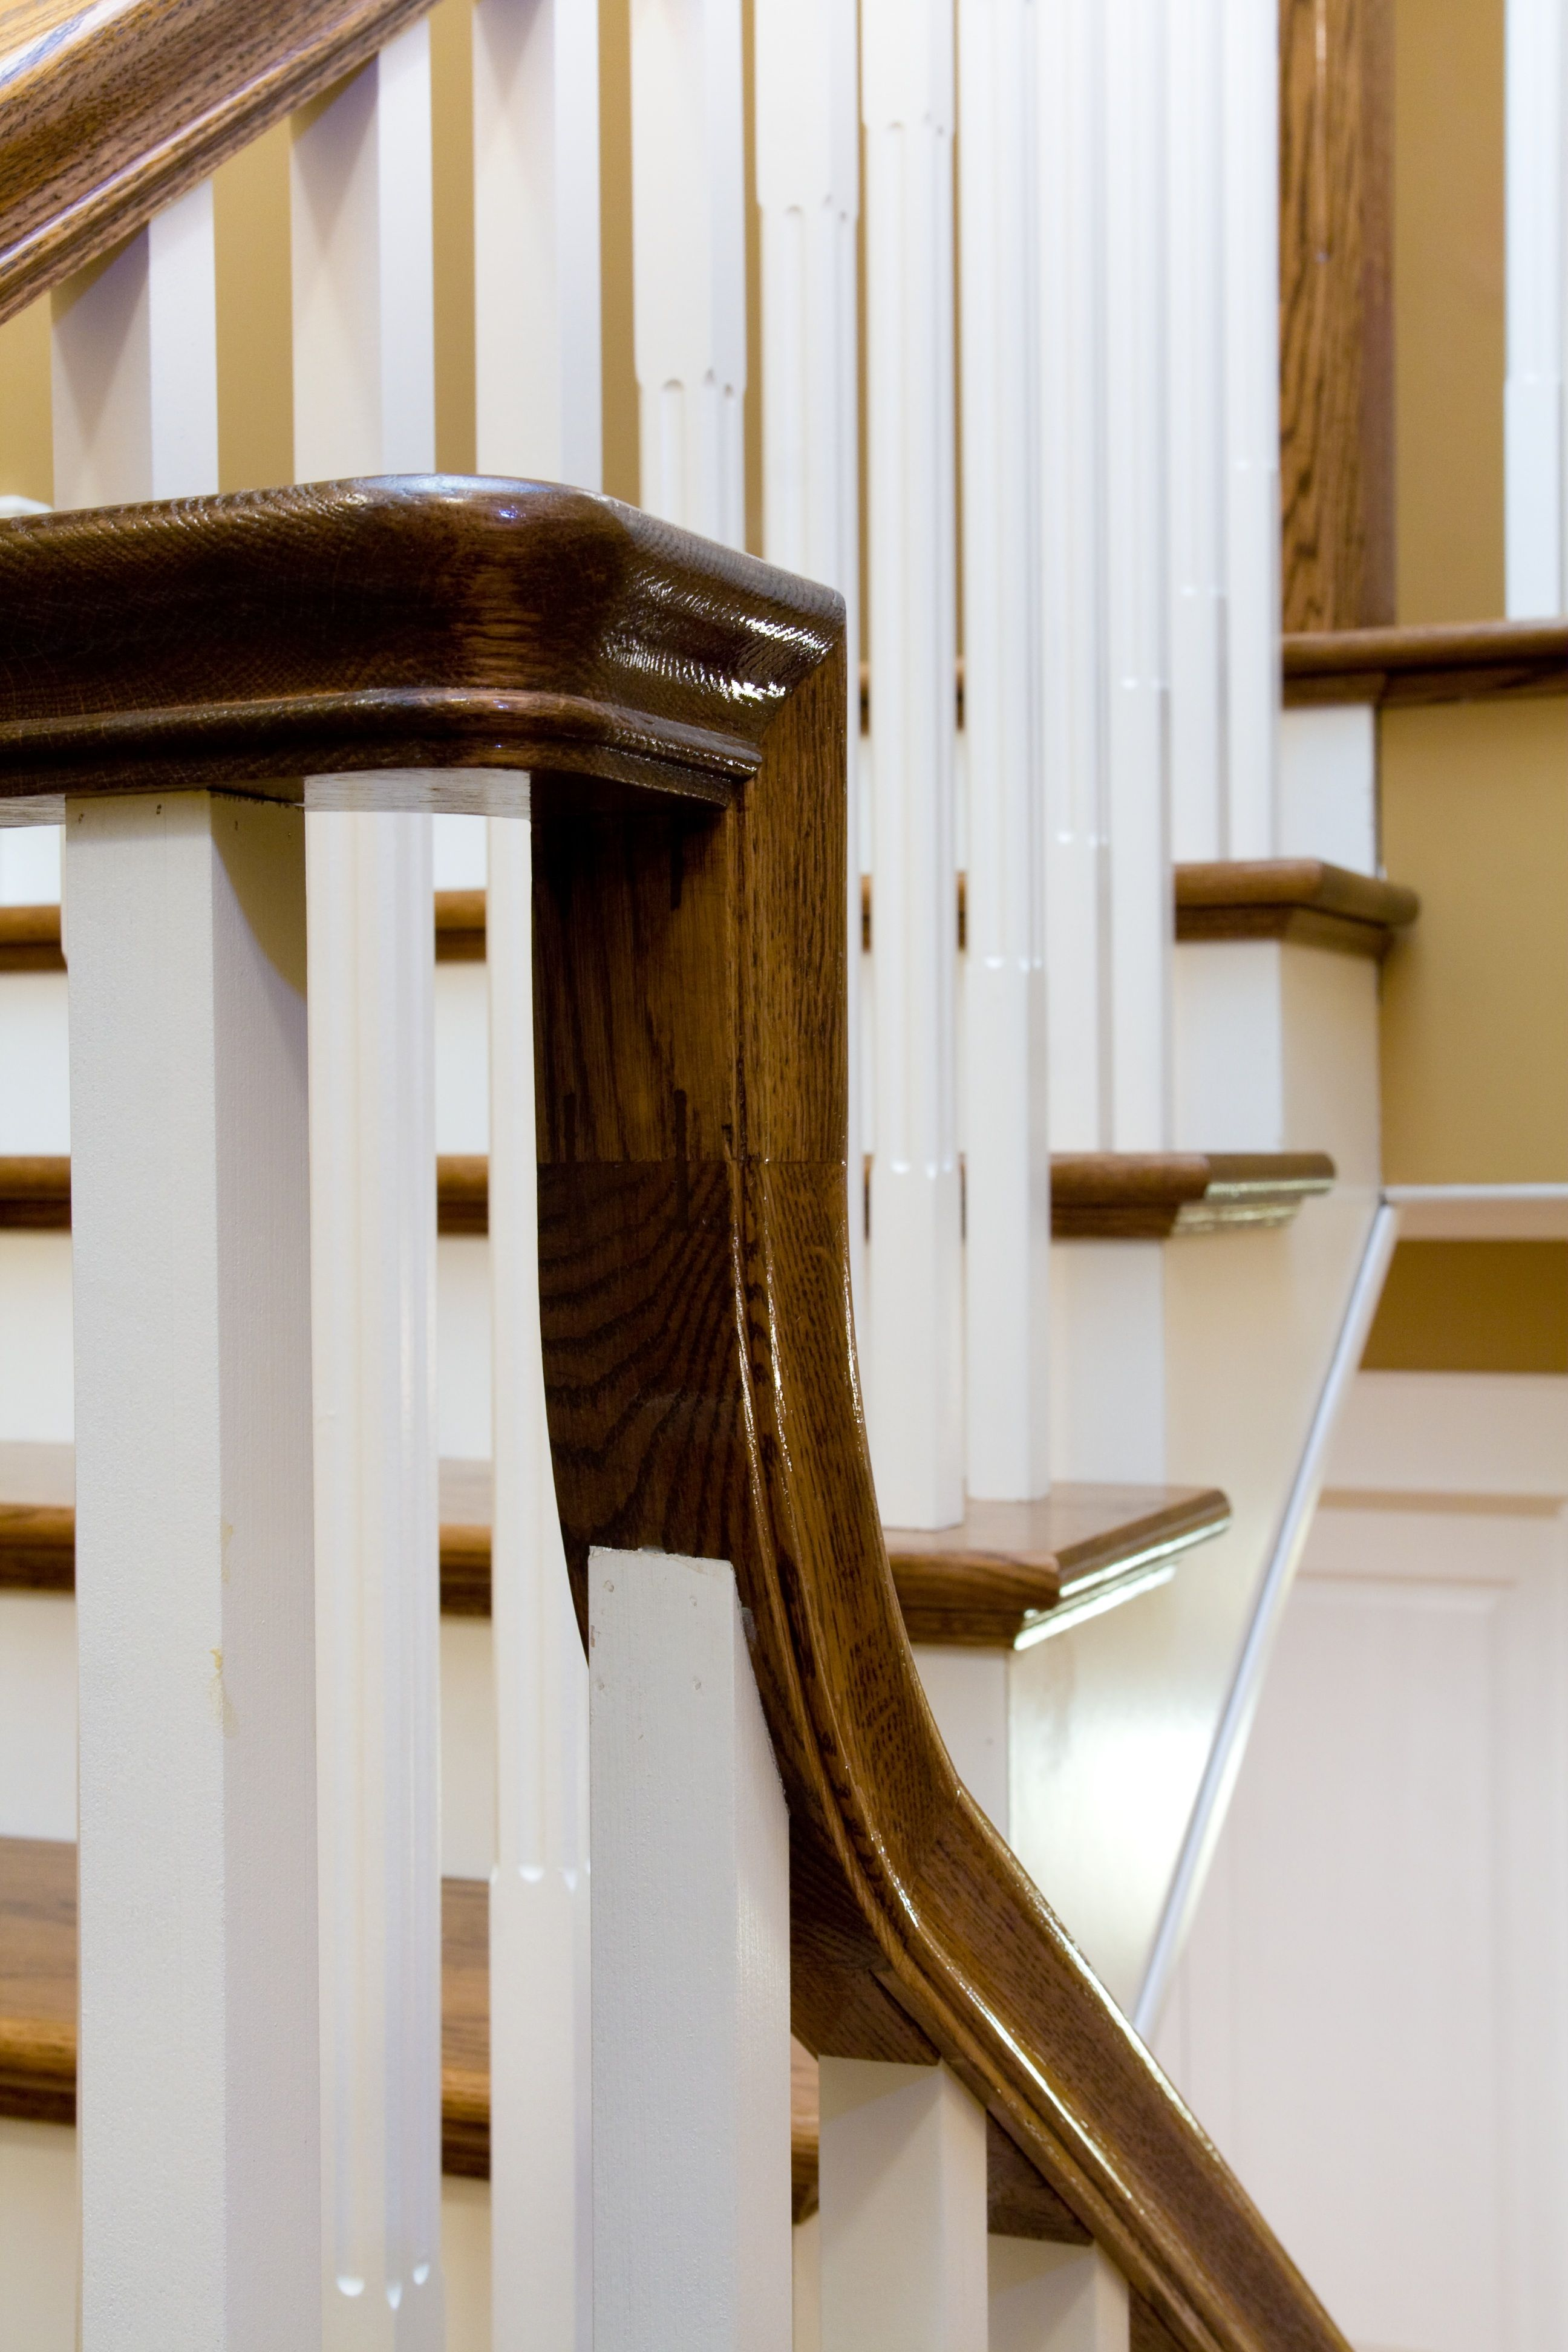 Distinctive Interiors   Dark Solid Wood Handrail And Treads With White  Spindles And Risers Makes A